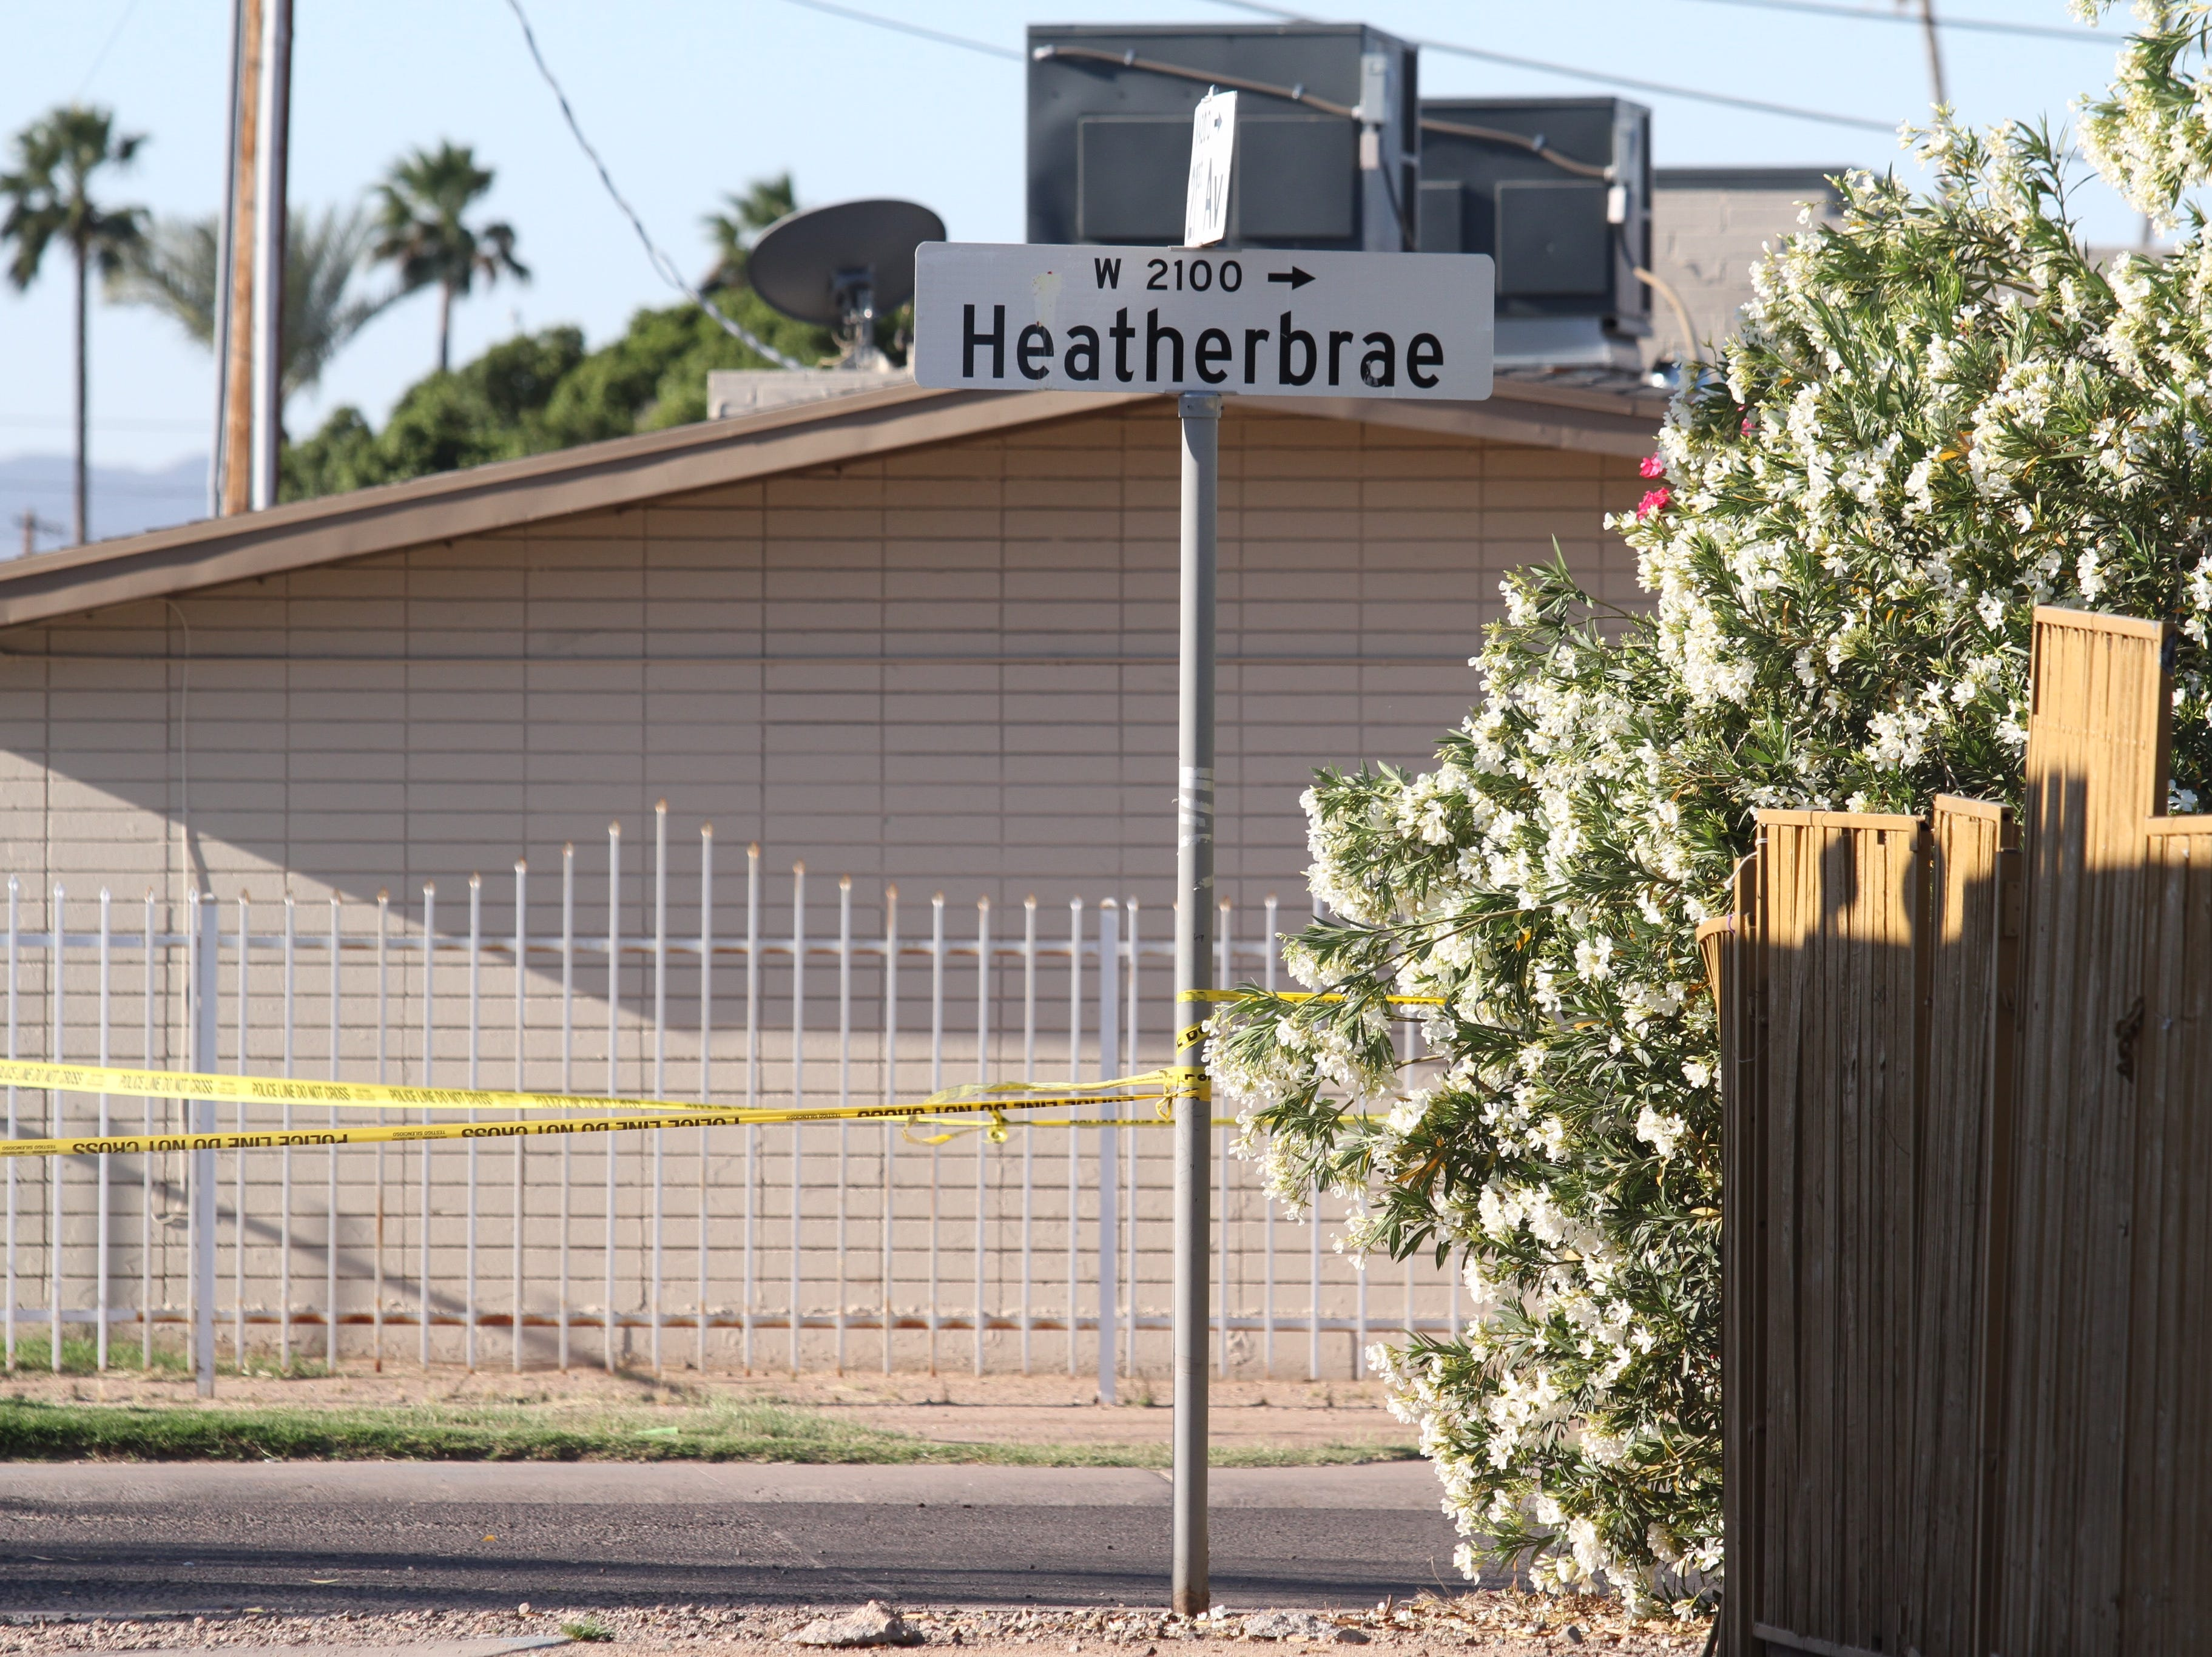 Phoenix police investigate a reported shooting that occurred April 9, 2019 near 21st and Glenrosa avenues.